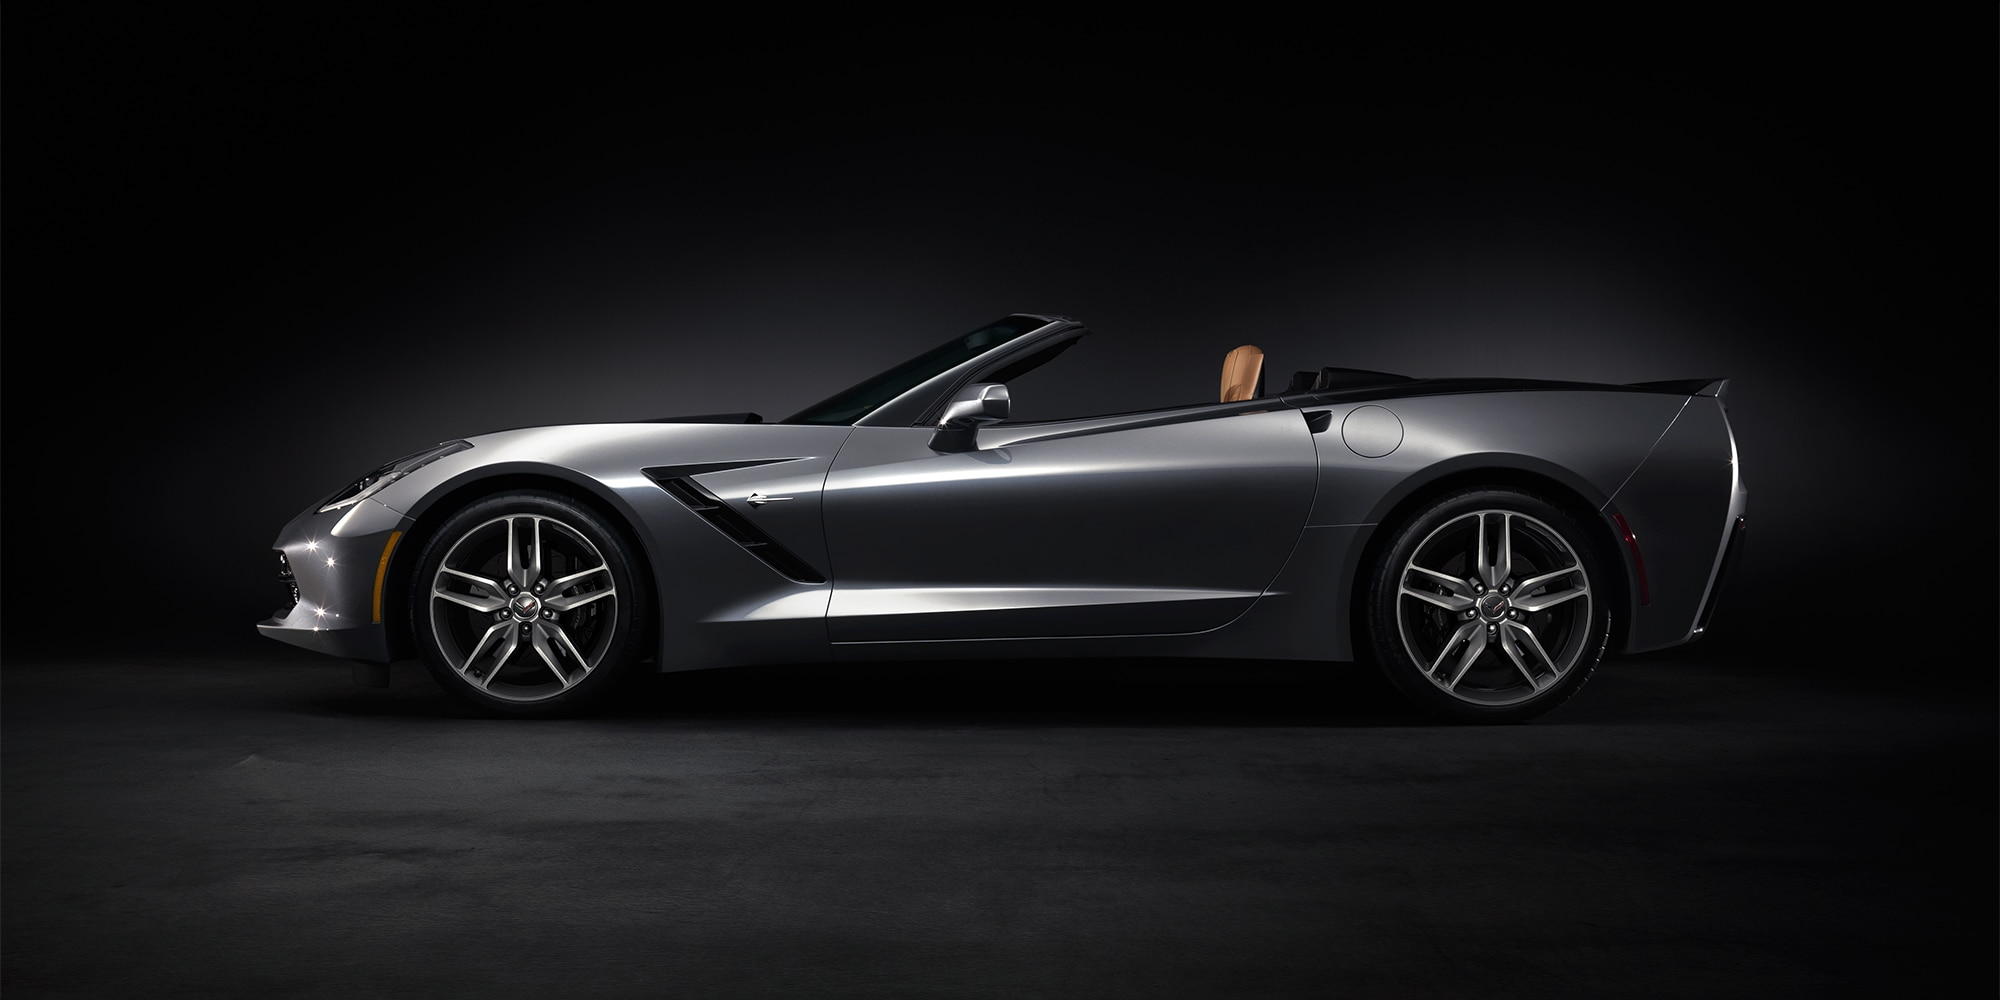 Foto exterior del Corvette Stingray Convertible 2017: perfil lateral